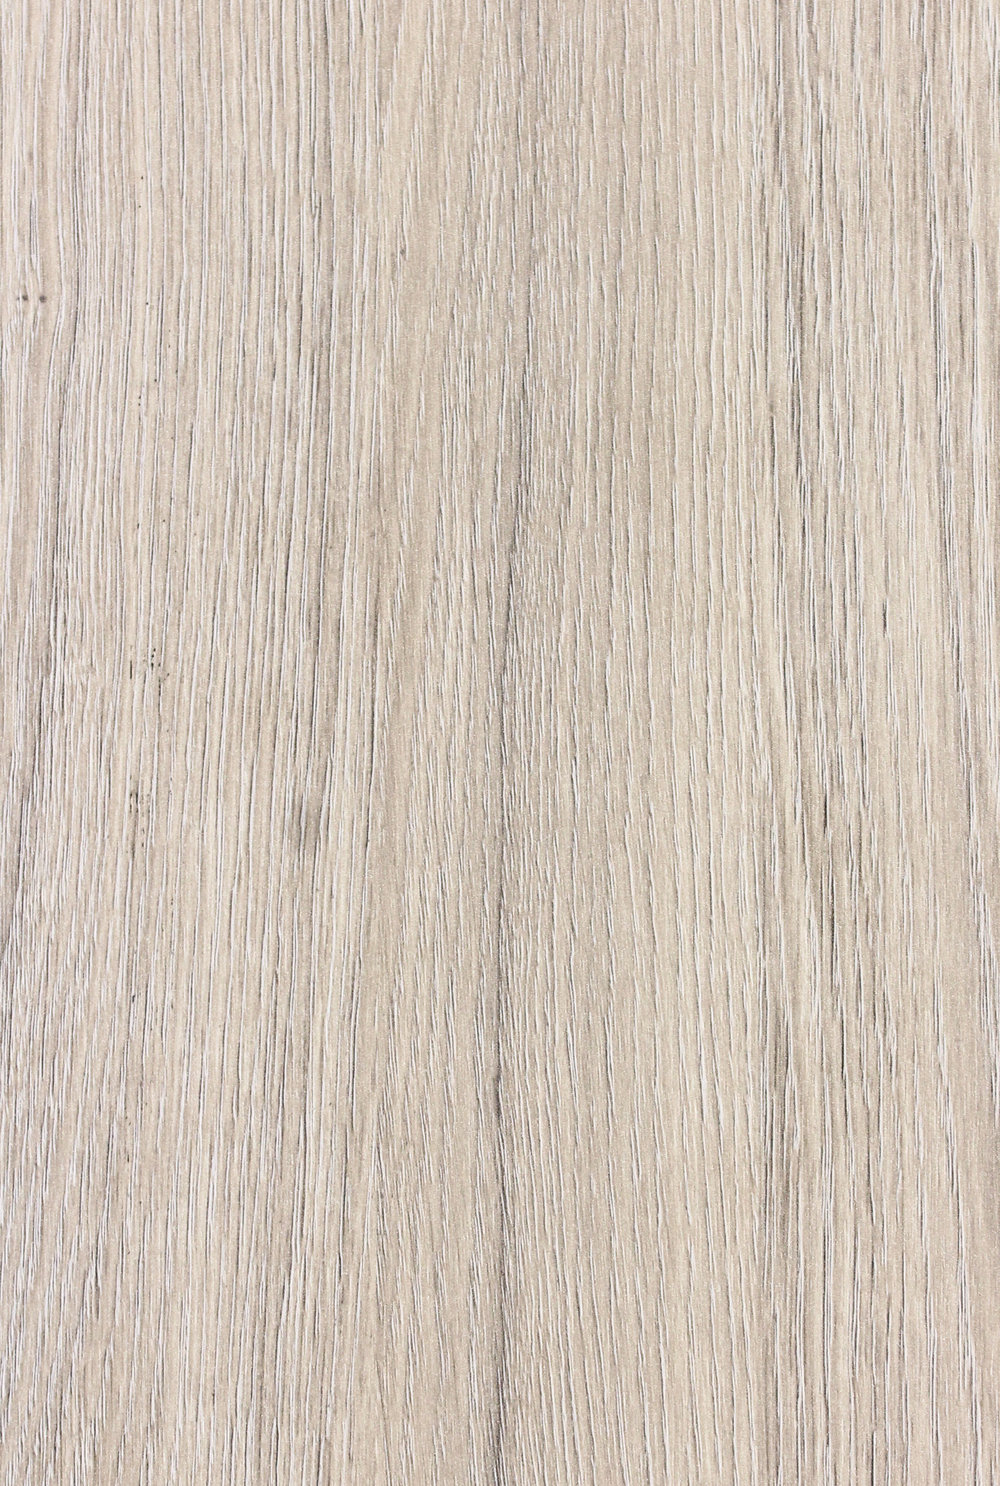 K005PW -  OYSTER URBAN OAK